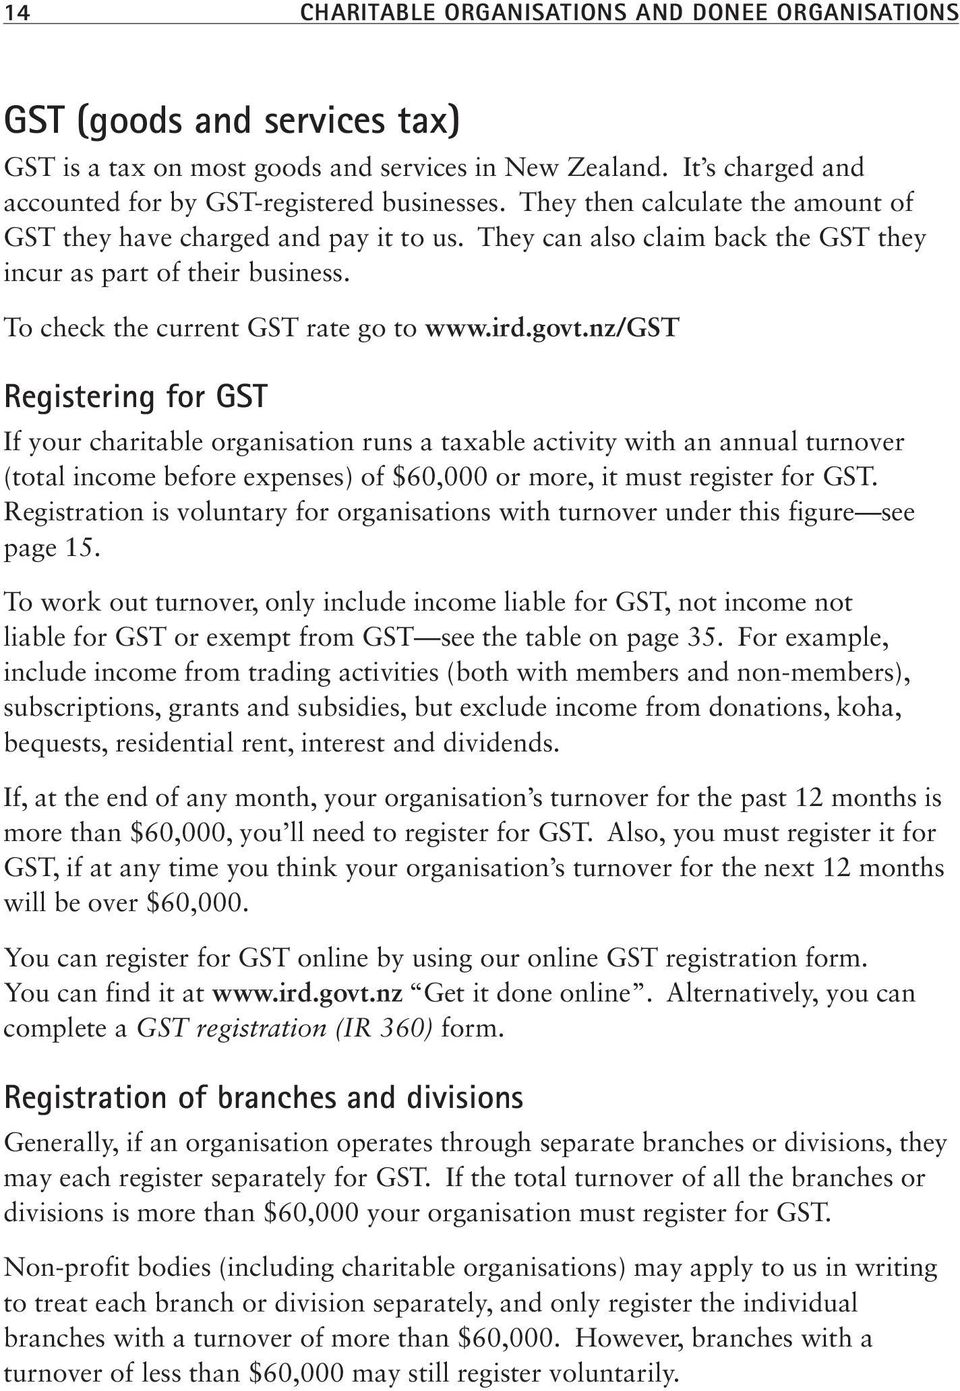 nz/gst Registering for GST If your charitable organisation runs a taxable activity with an annual turnover (total income before expenses) of $60,000 or more, it must register for GST.